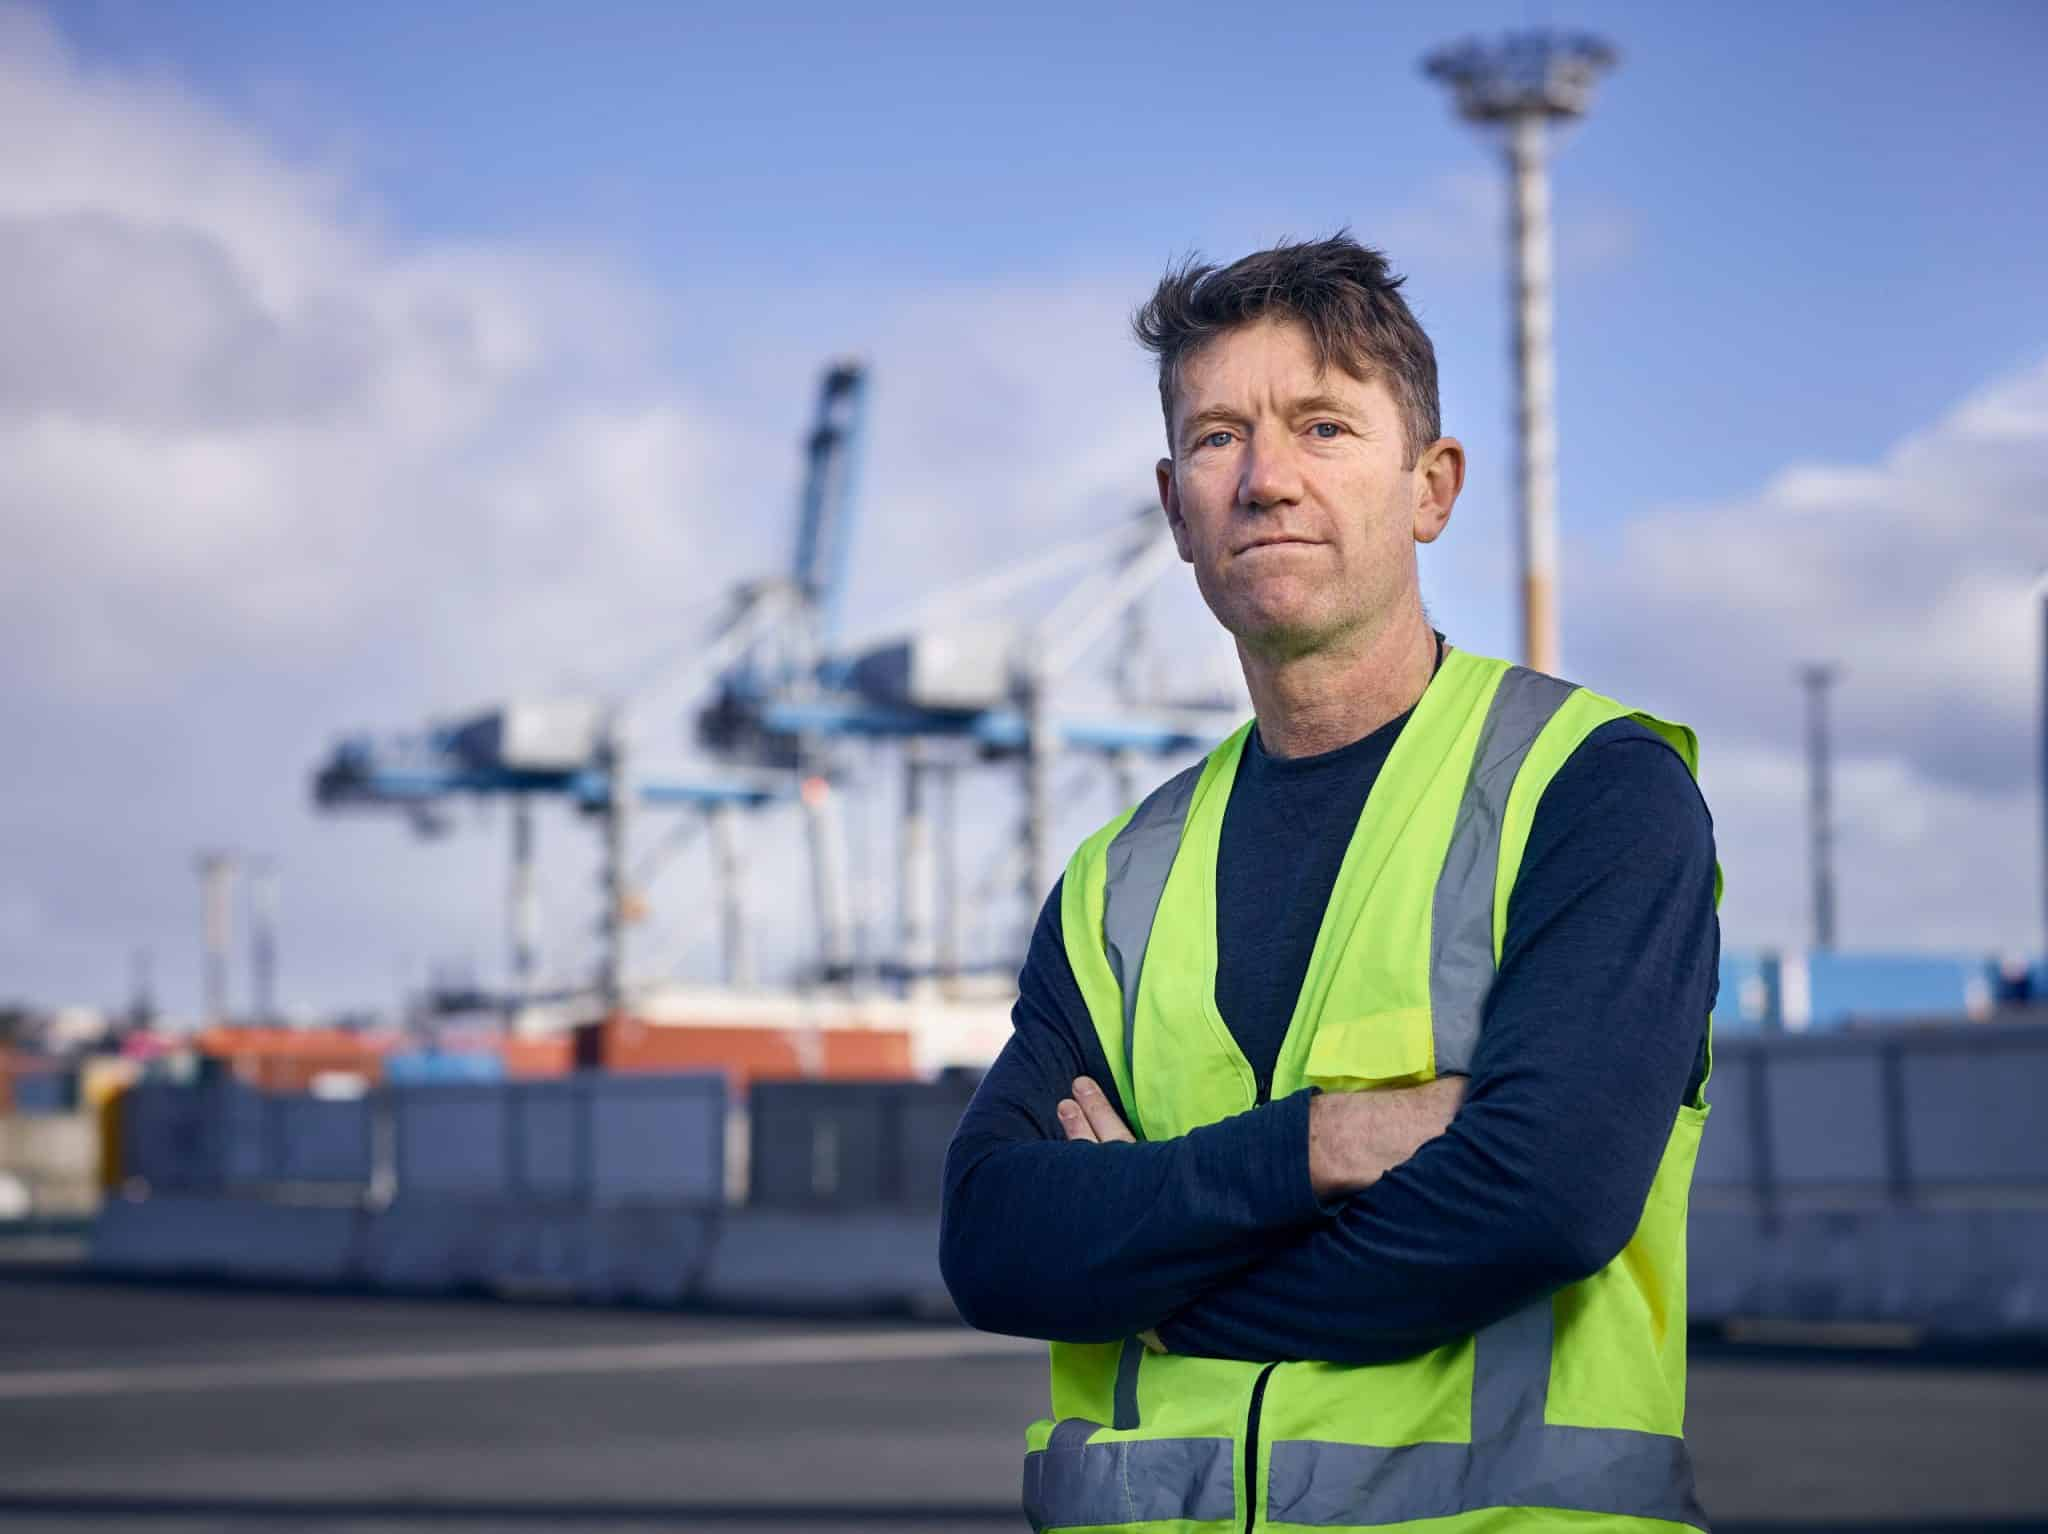 Matt Ball, General Manager of Public Relations and Communications at Ports of Auckland